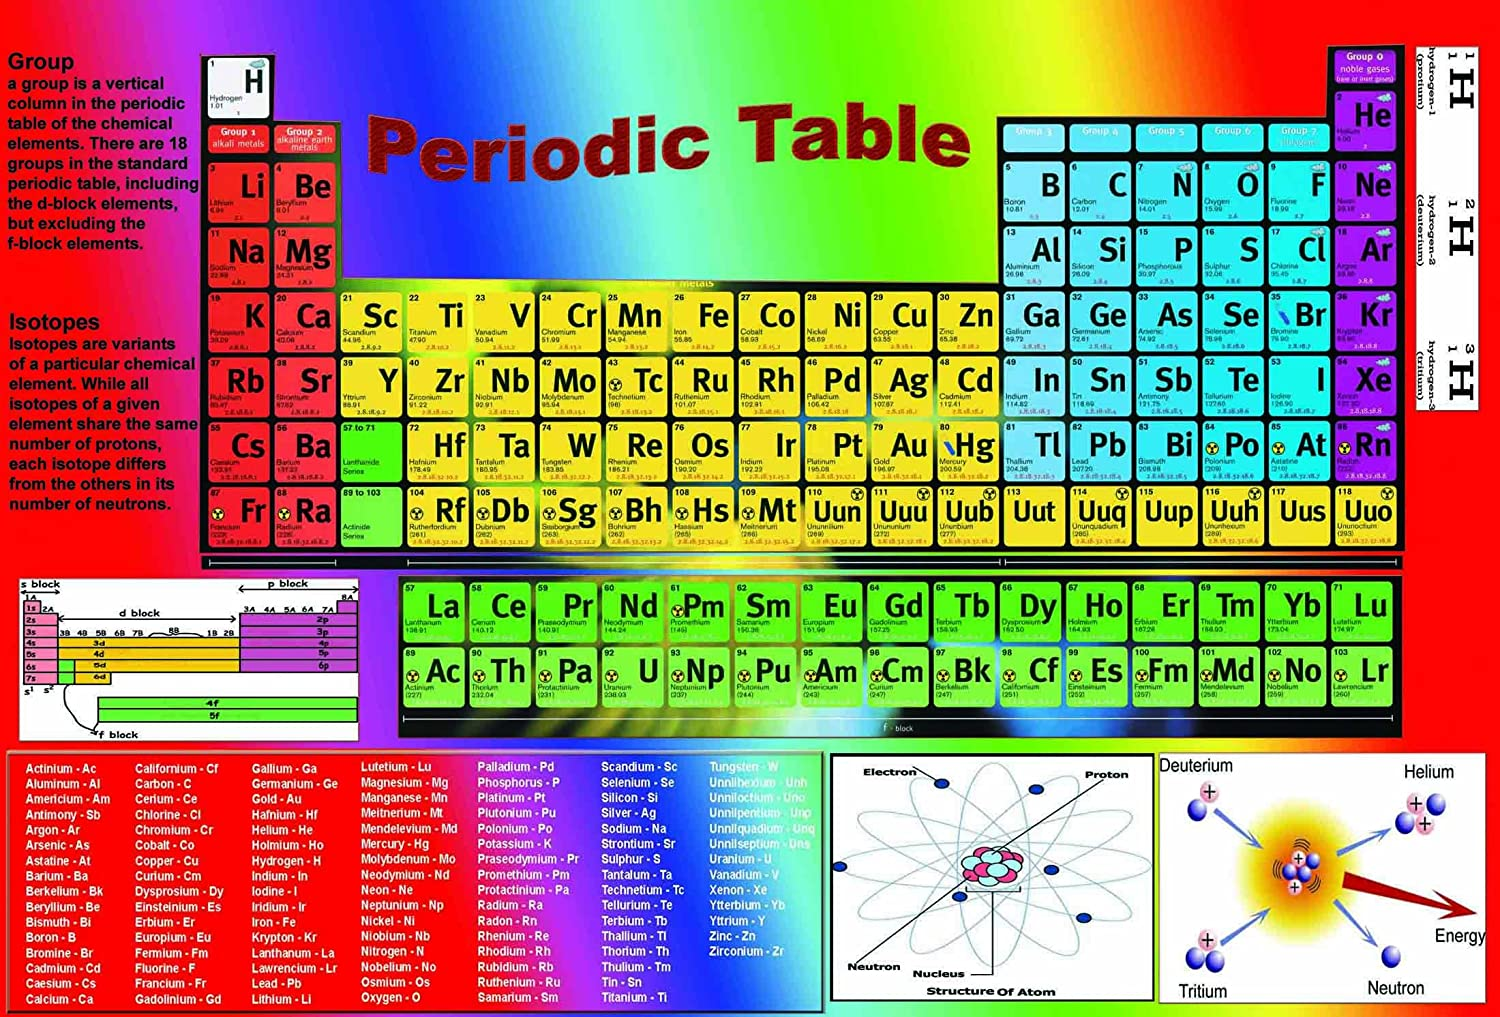 Amazon huge laminated periodic table elements chemistry amazon huge laminated periodic table elements chemistry chemical school type educational poster wall chart size 15x225 inches industrial gamestrikefo Image collections